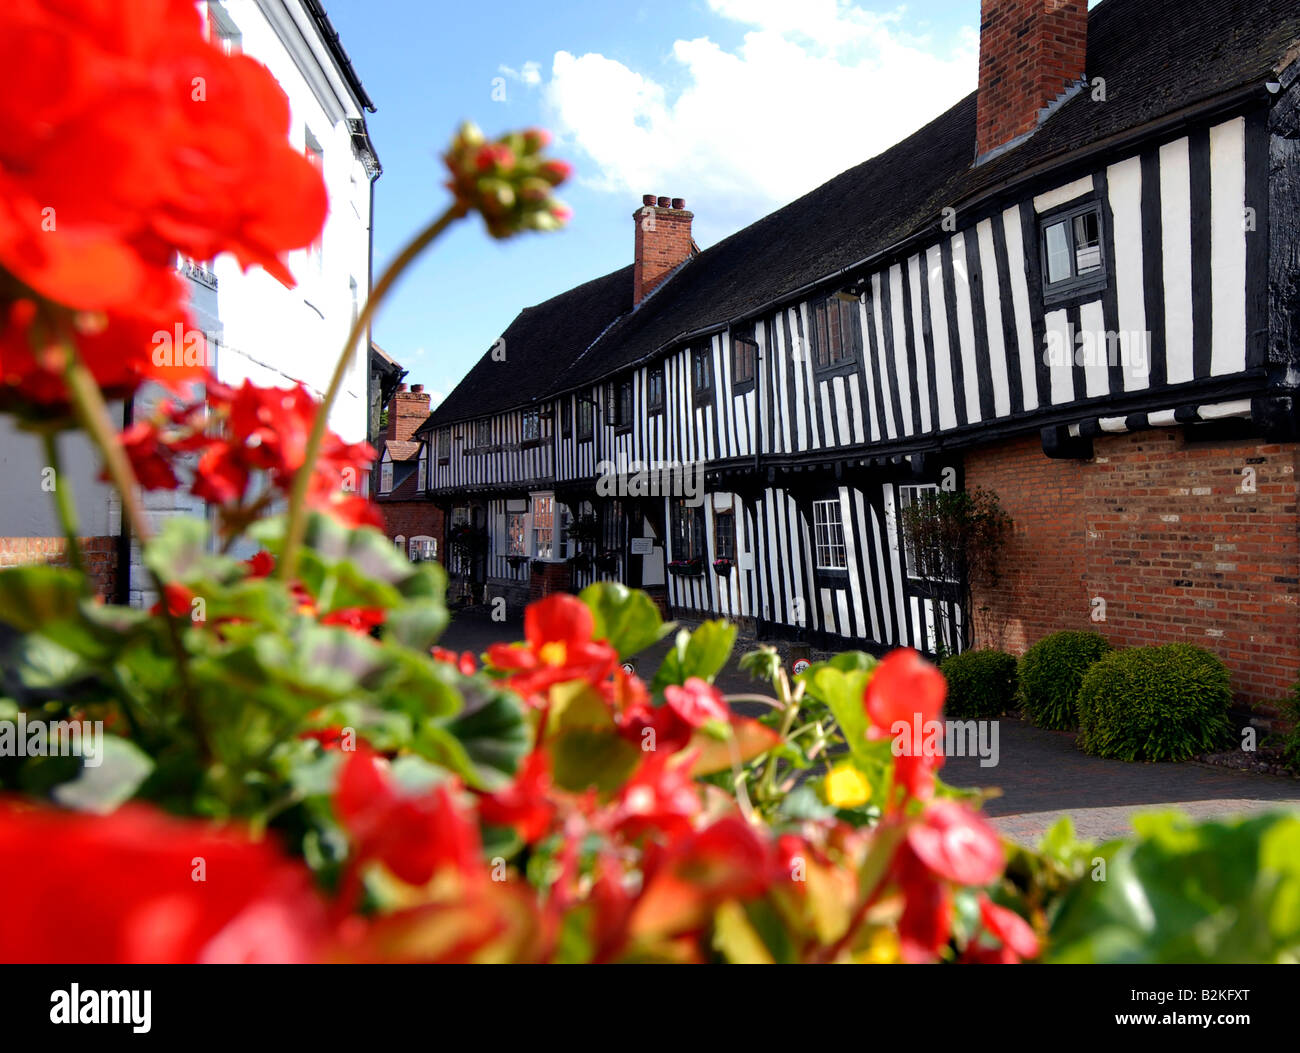 Exterior of timber framed buildings in Malt Mill lane Alcester Warwickshire U K - Stock Image